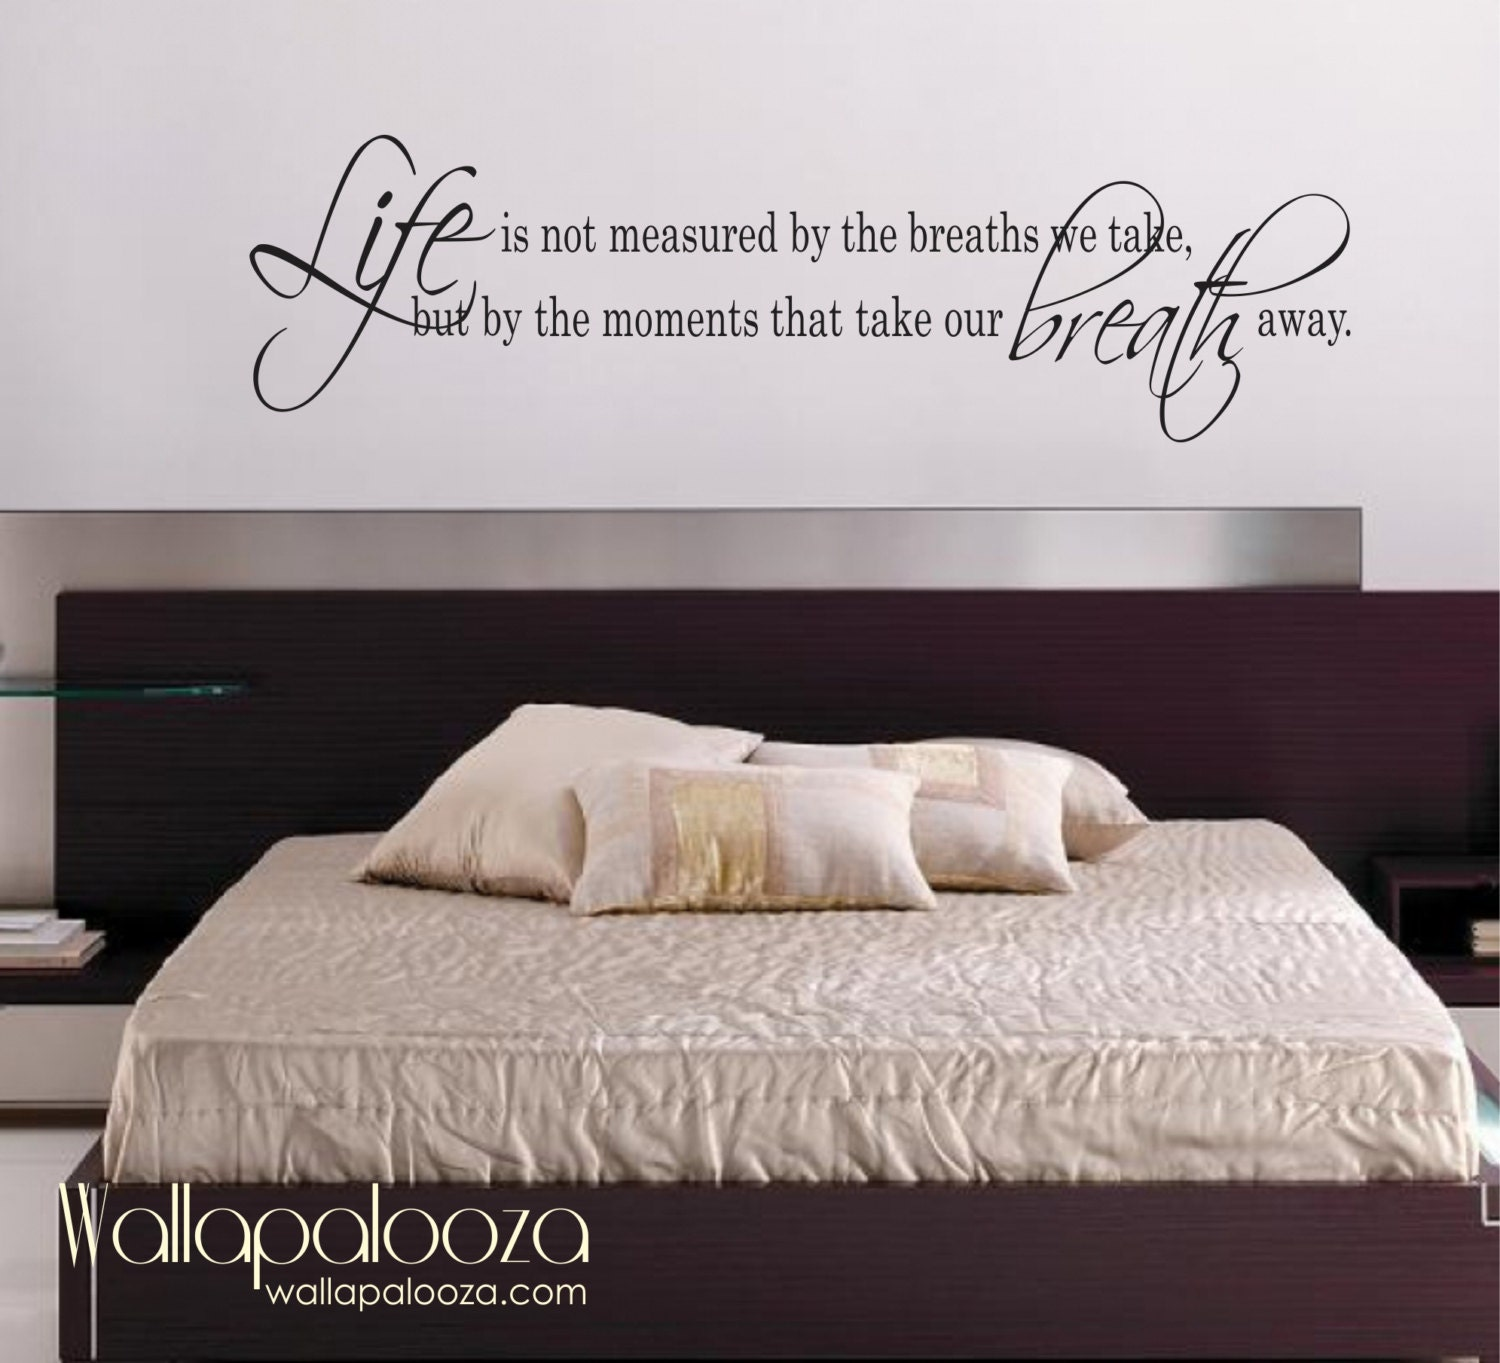 Love Wall Quotes Captivating Life Is Not Measured Wall Decal Love Wall Decal Bedroom